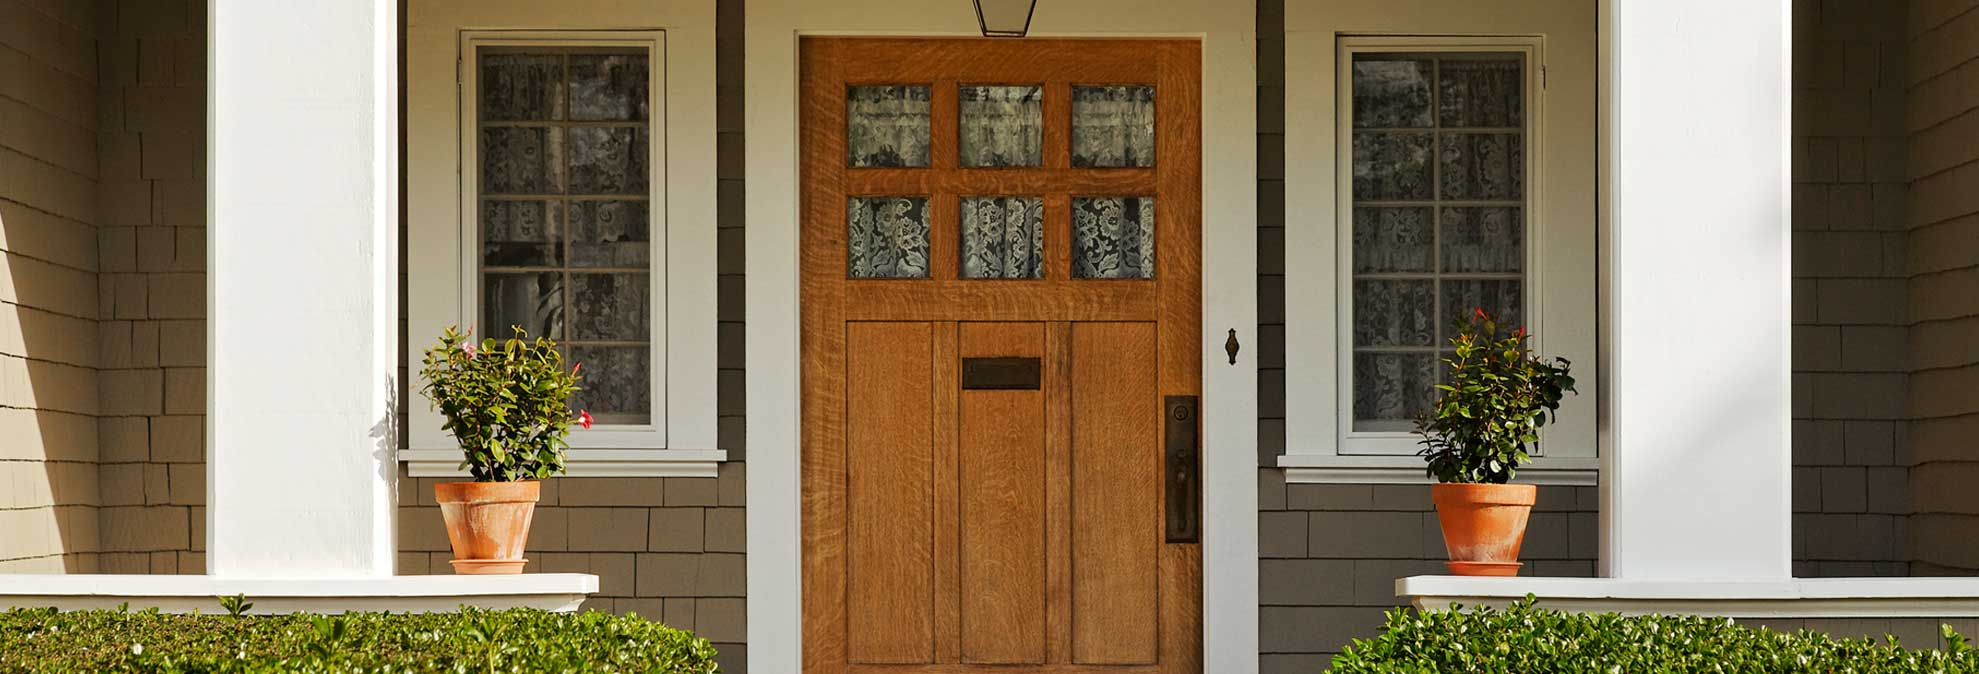 Residential Front Doors best entry door buying guide - consumer reports